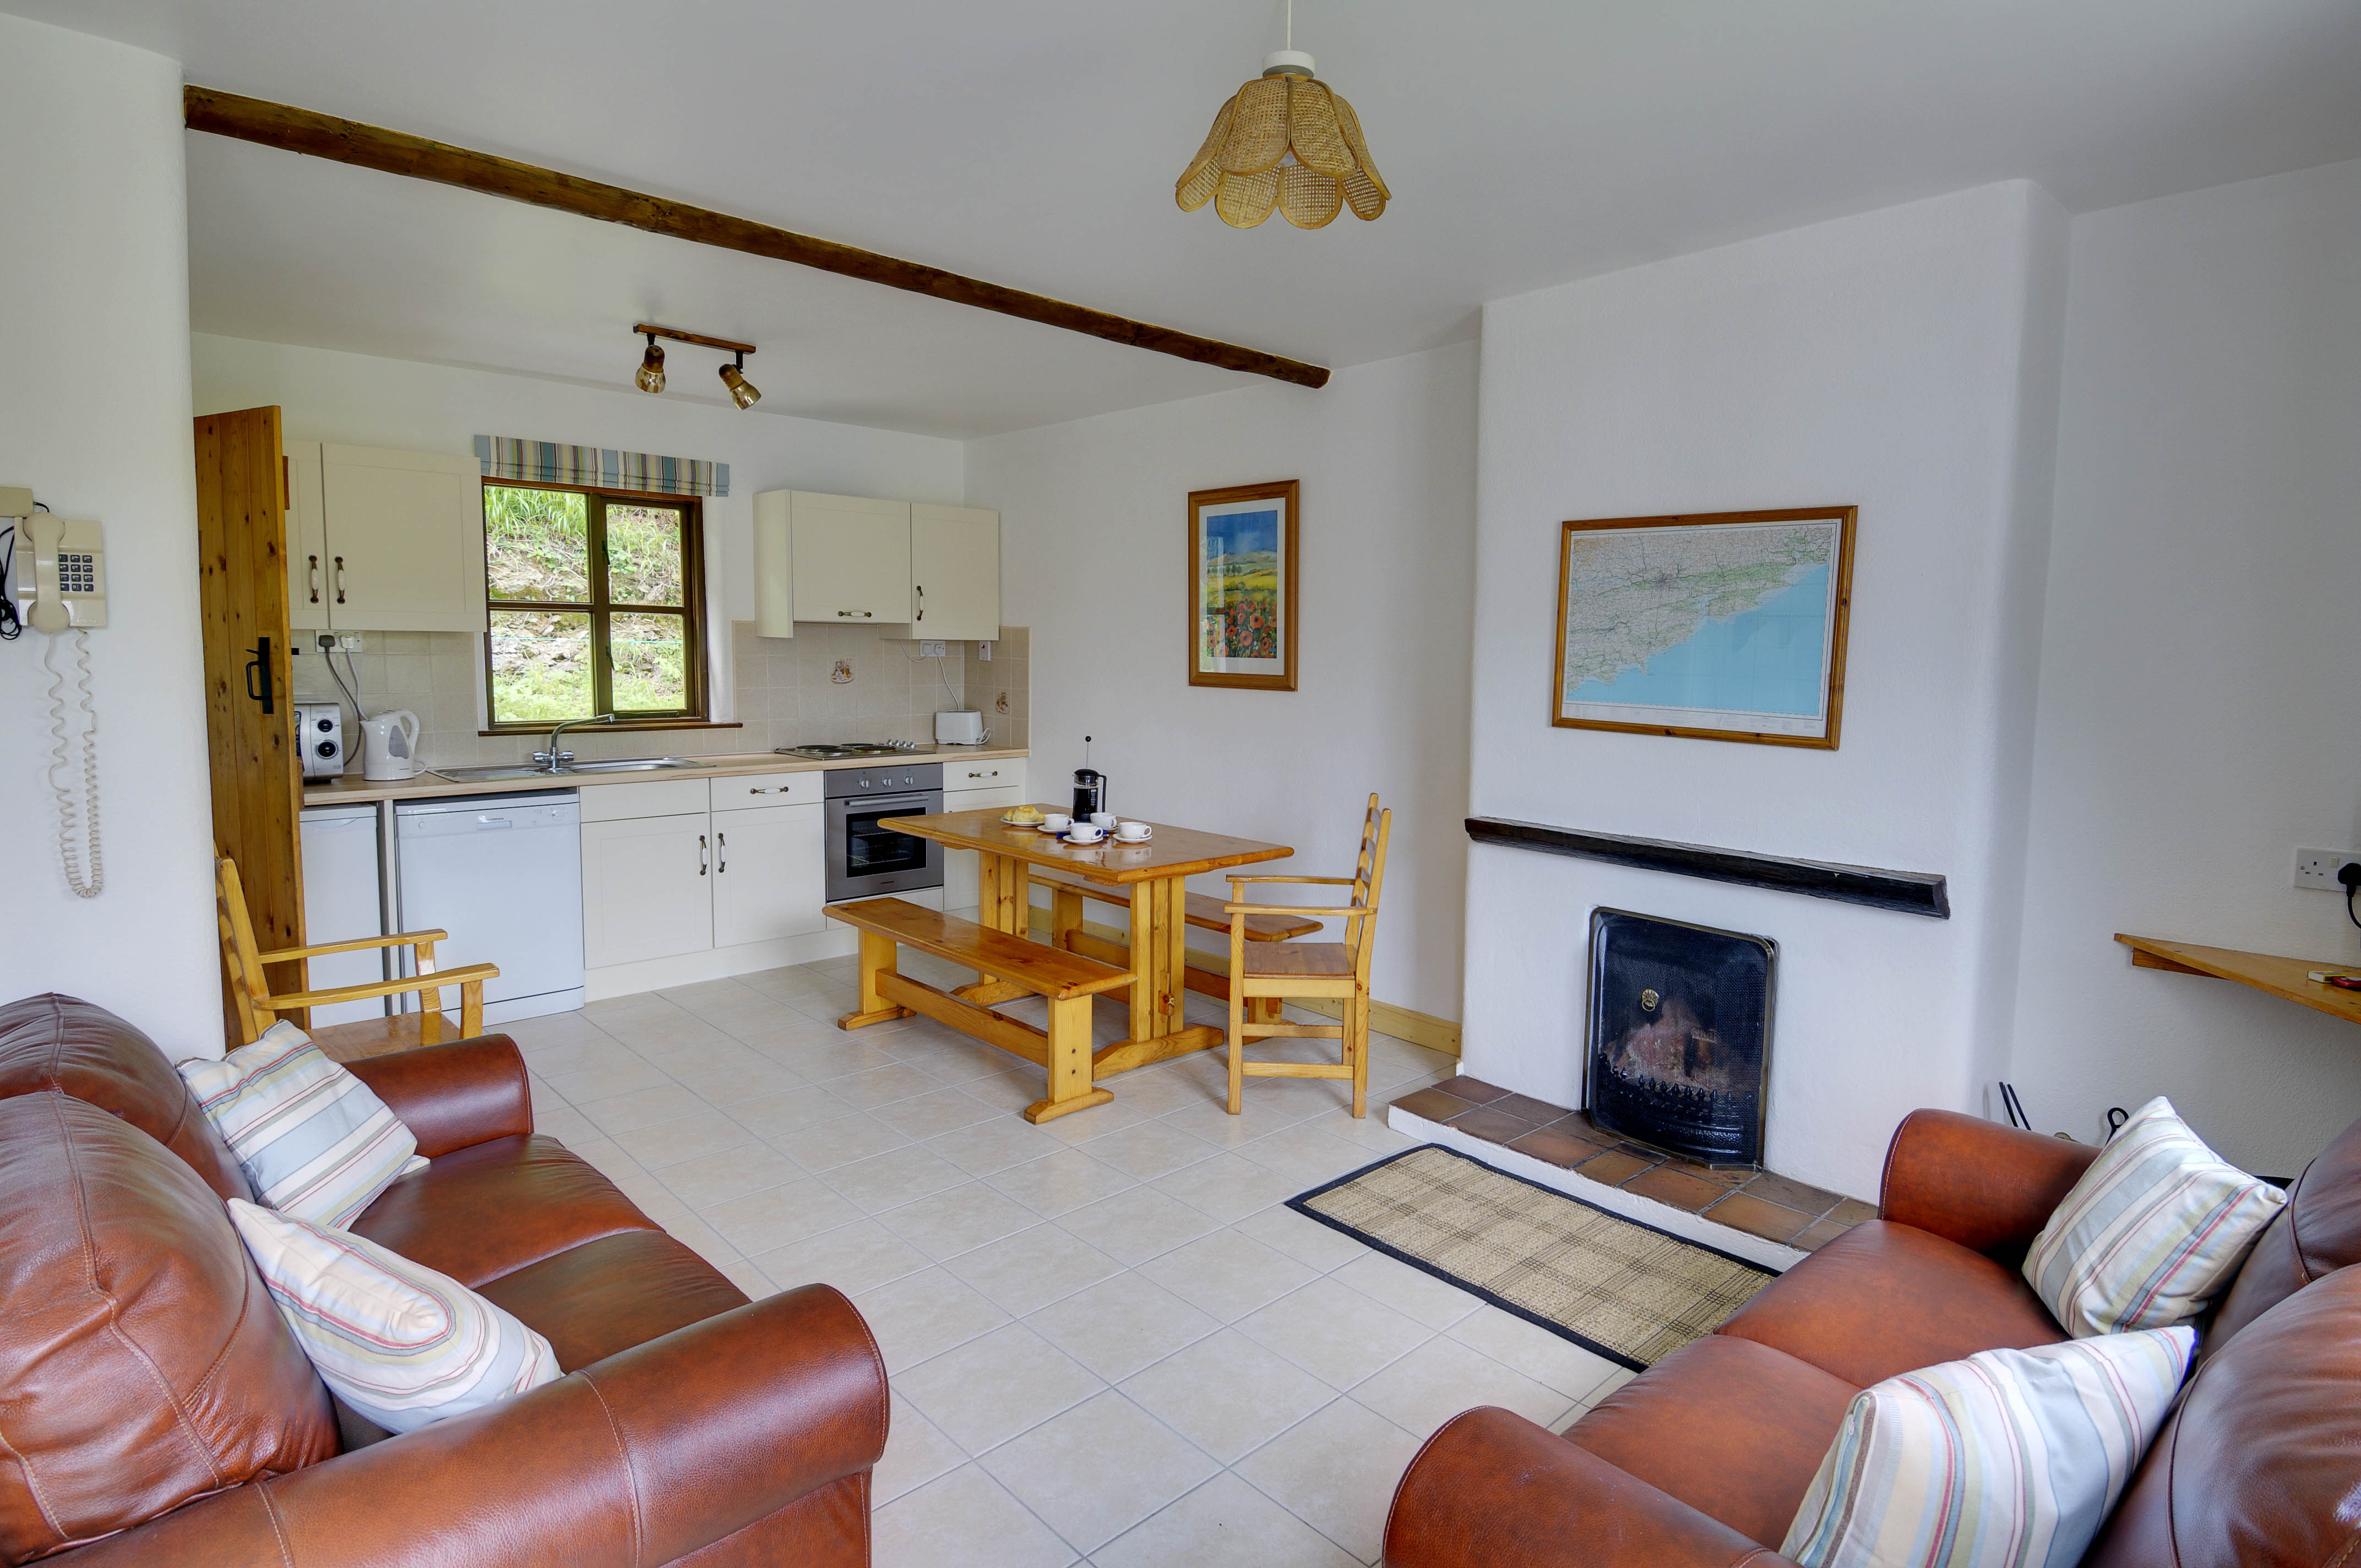 Sensational Self Catering Cottages Kinsale Home Download Free Architecture Designs Crovemadebymaigaardcom